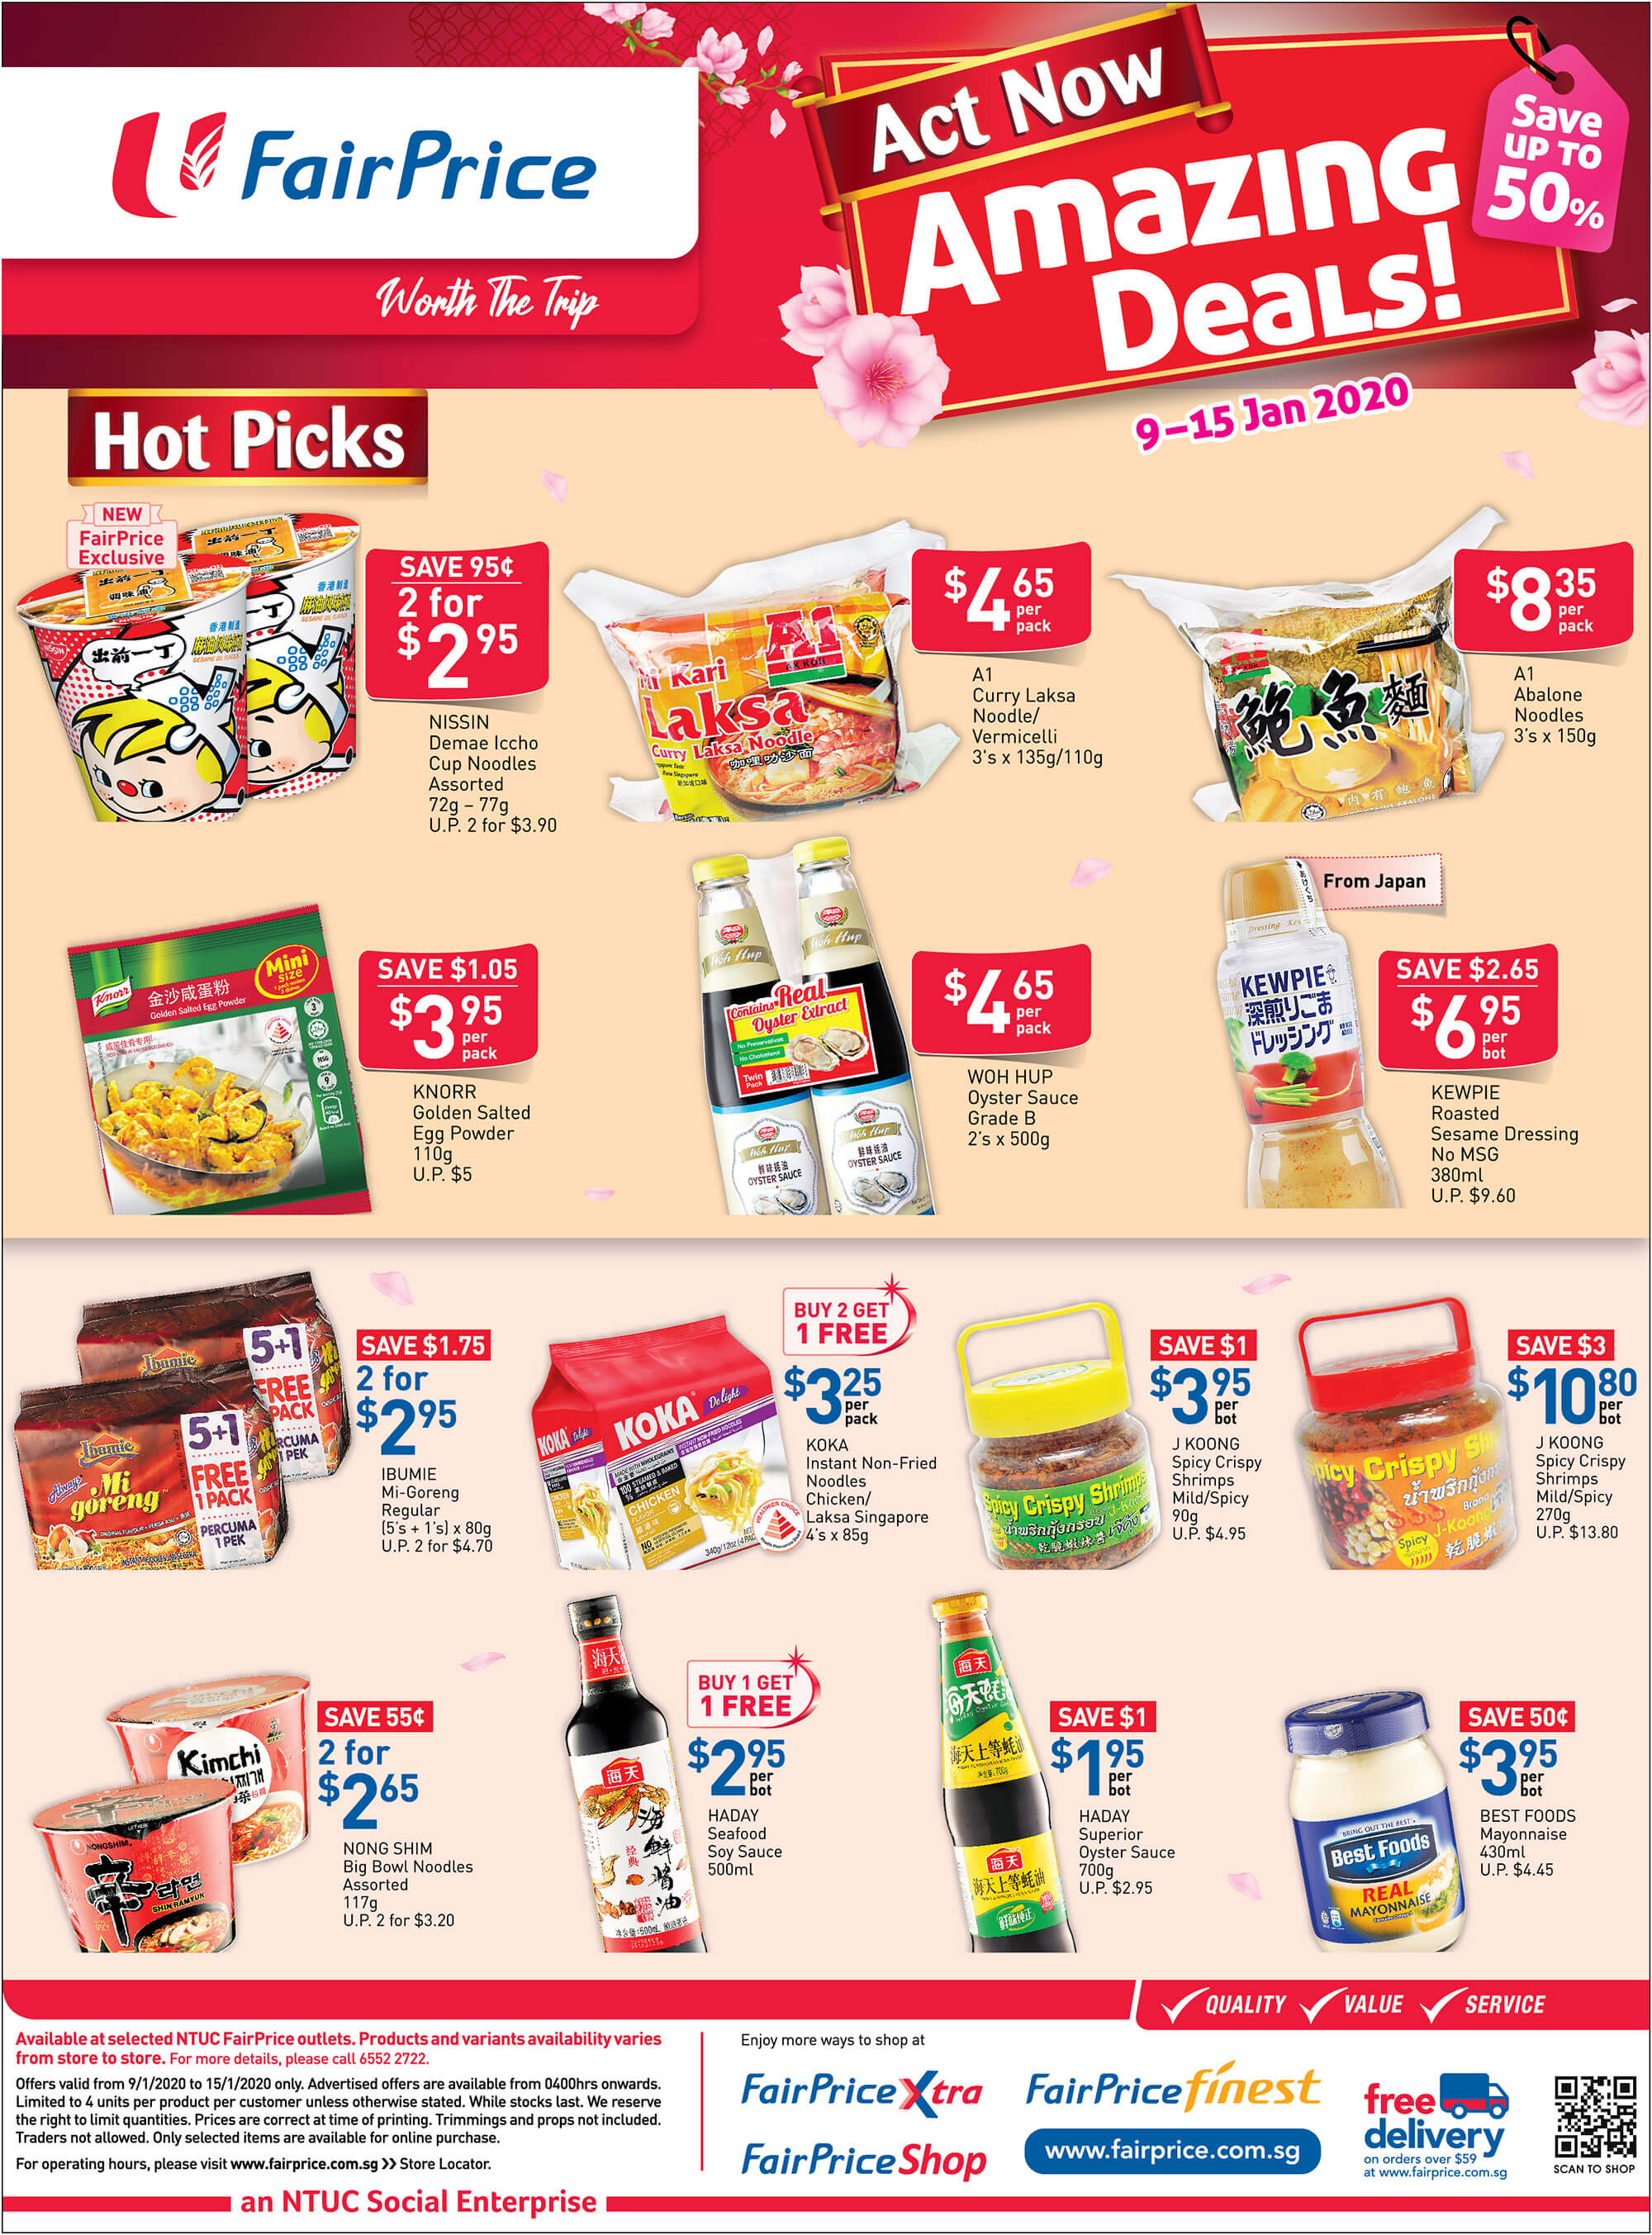 NTUC FairPrice SG Your Weekly Saver Promotions 9-15 Jan 2020 | Why Not Deals 3 & Promotions